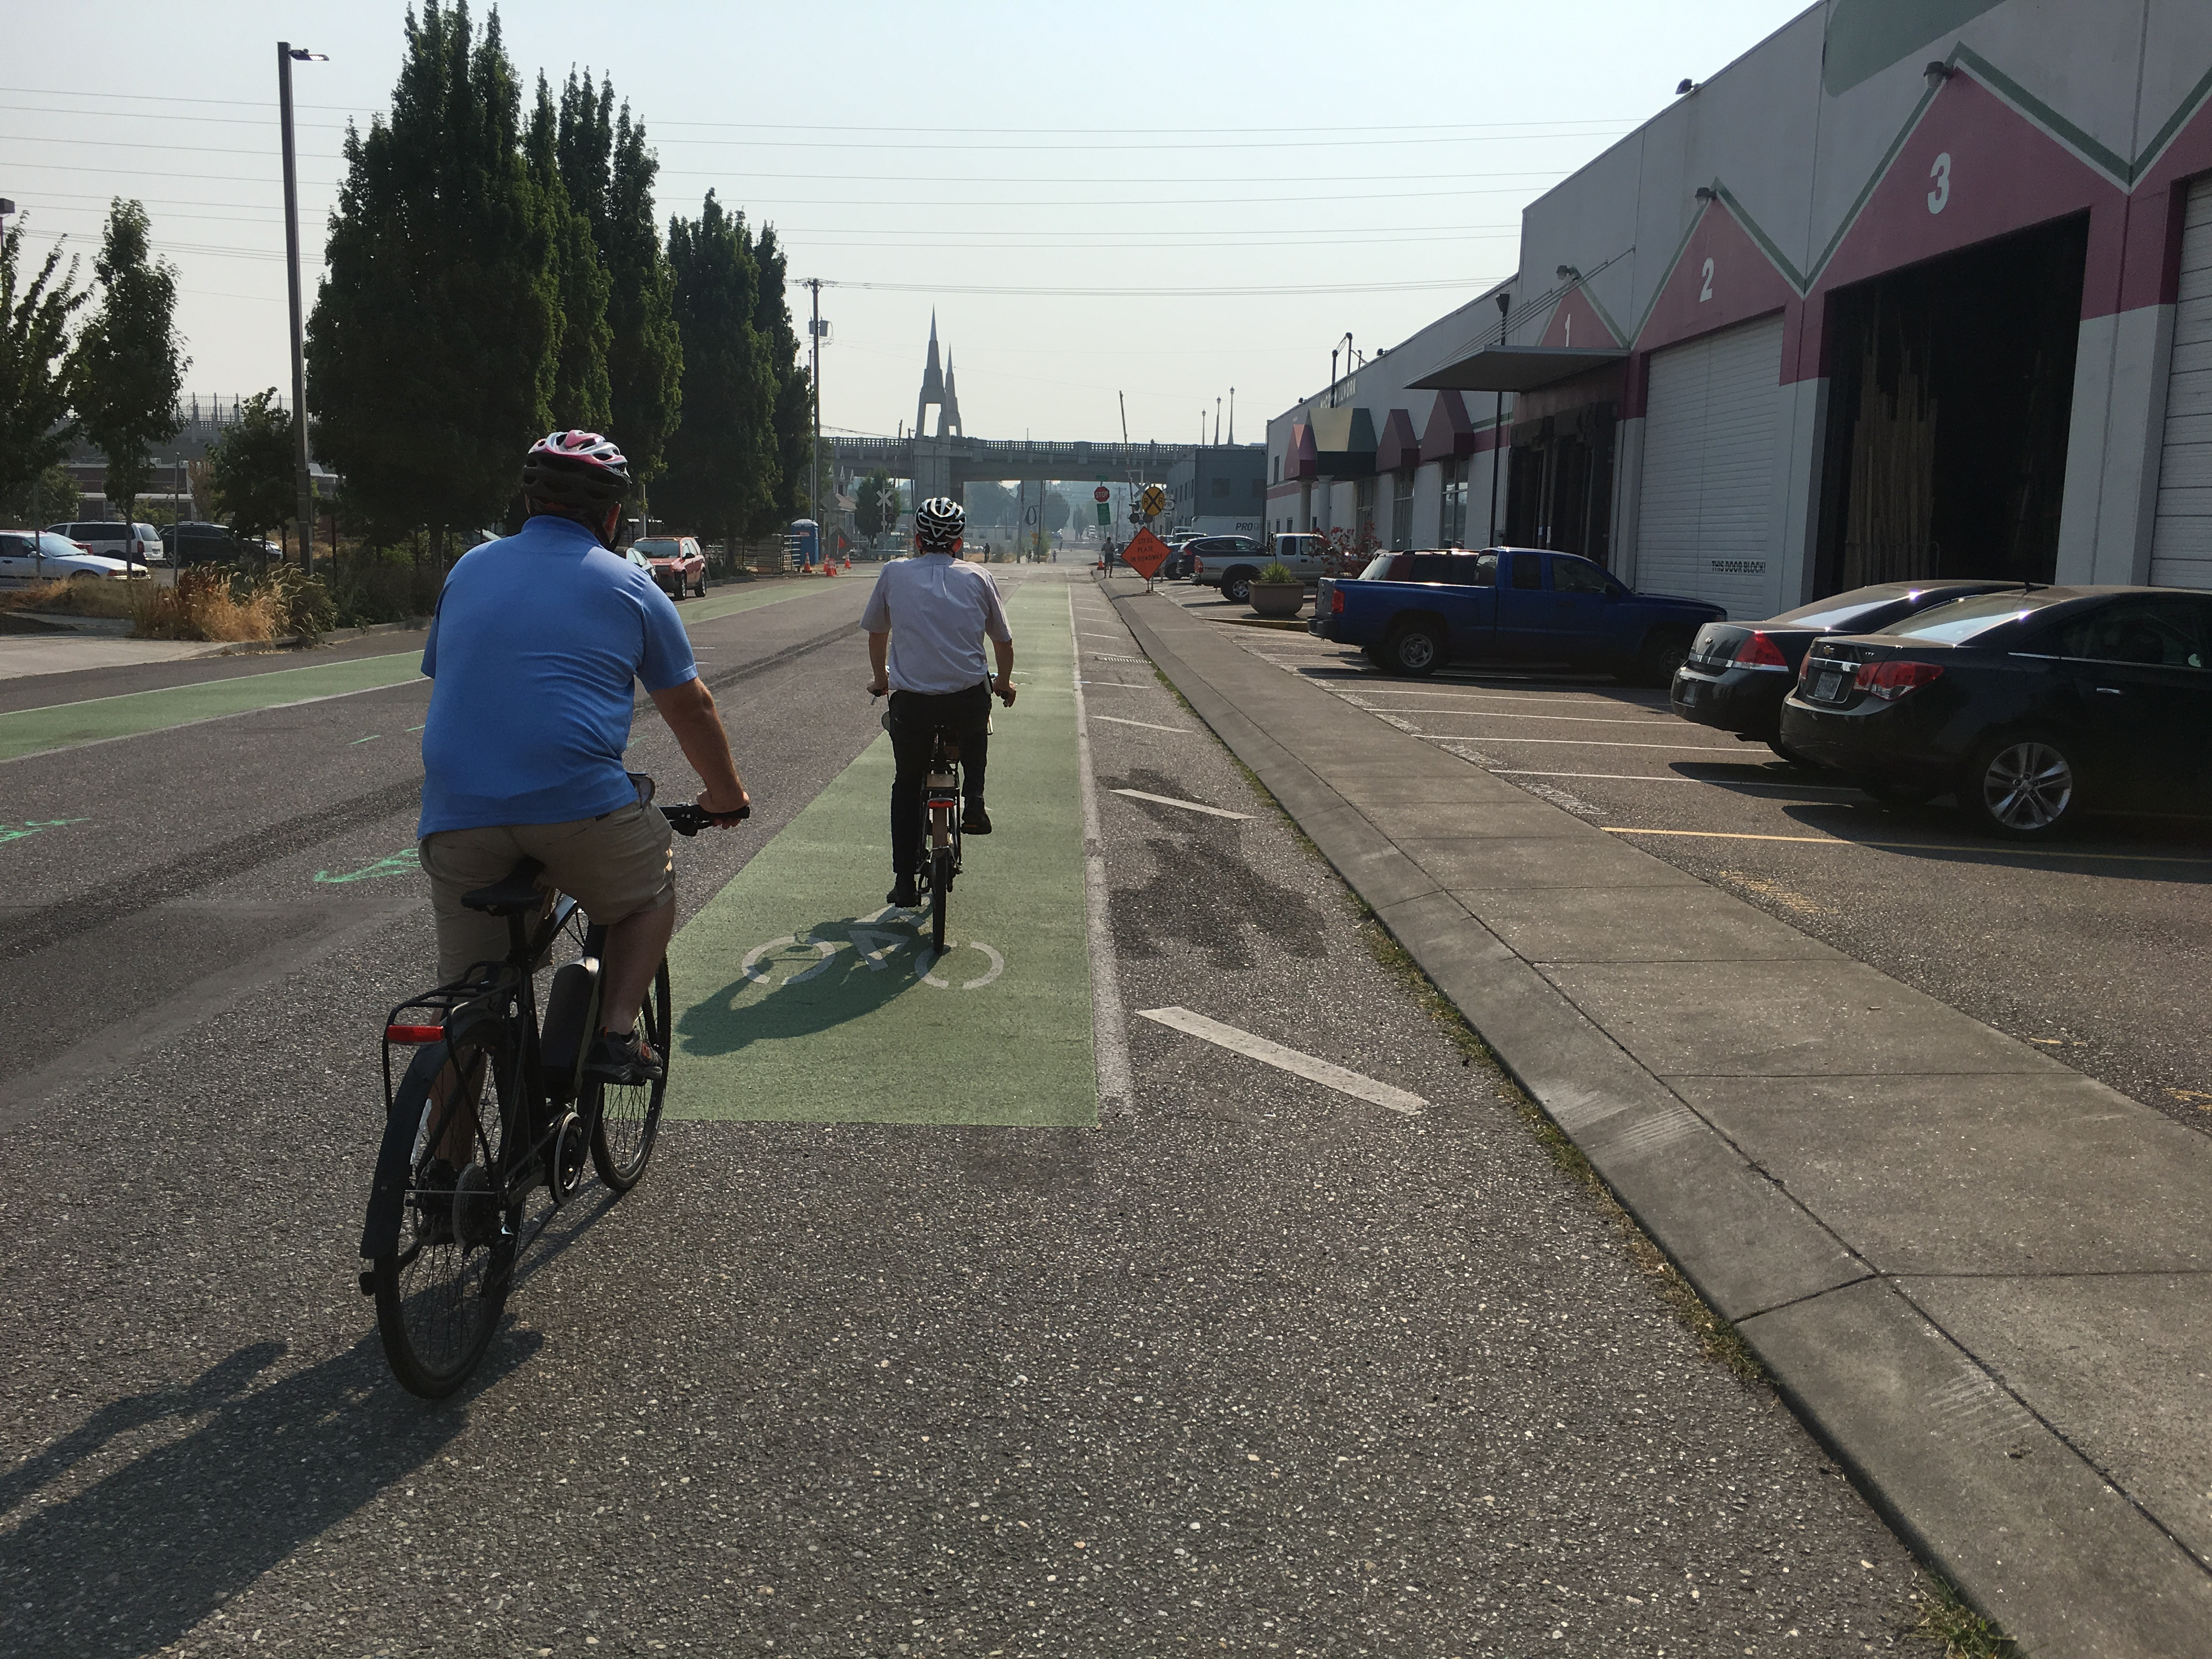 Individuals riding their bikes on a bike lane